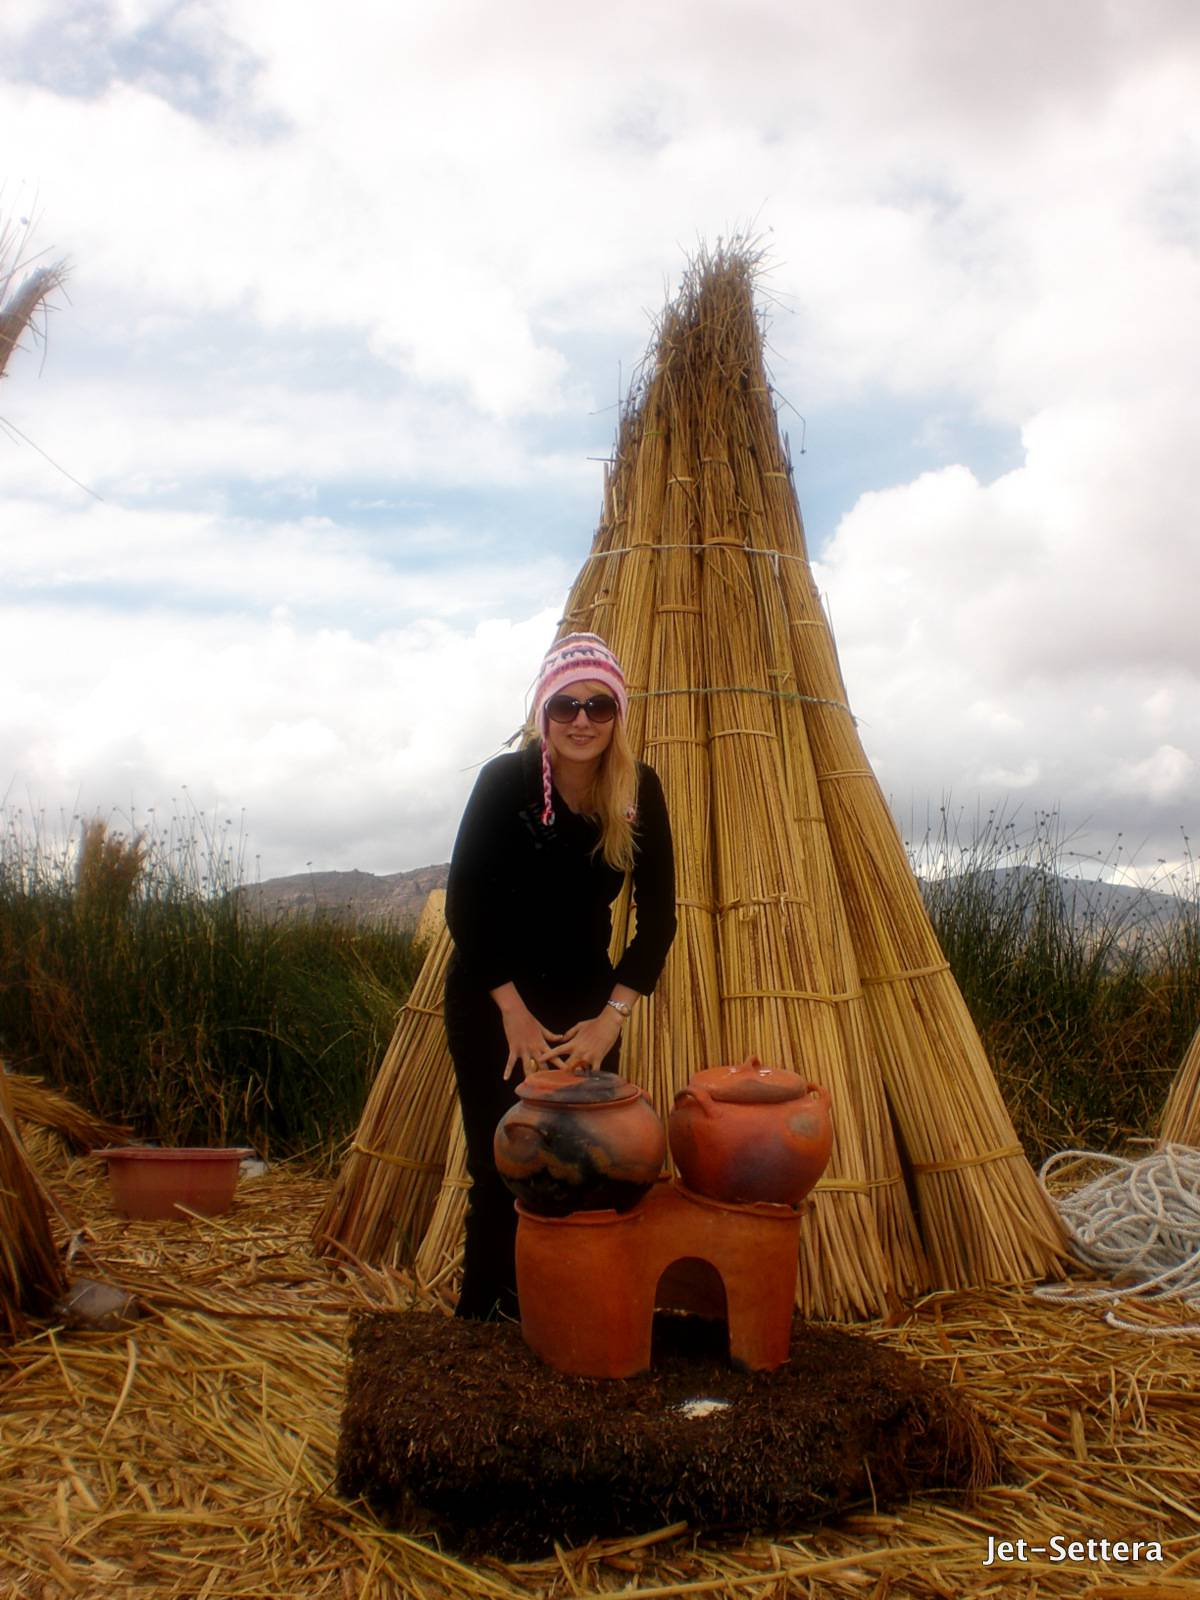 Who wants breakfast? Lake Titicaca, Peru - Things to do in Machu Picchu